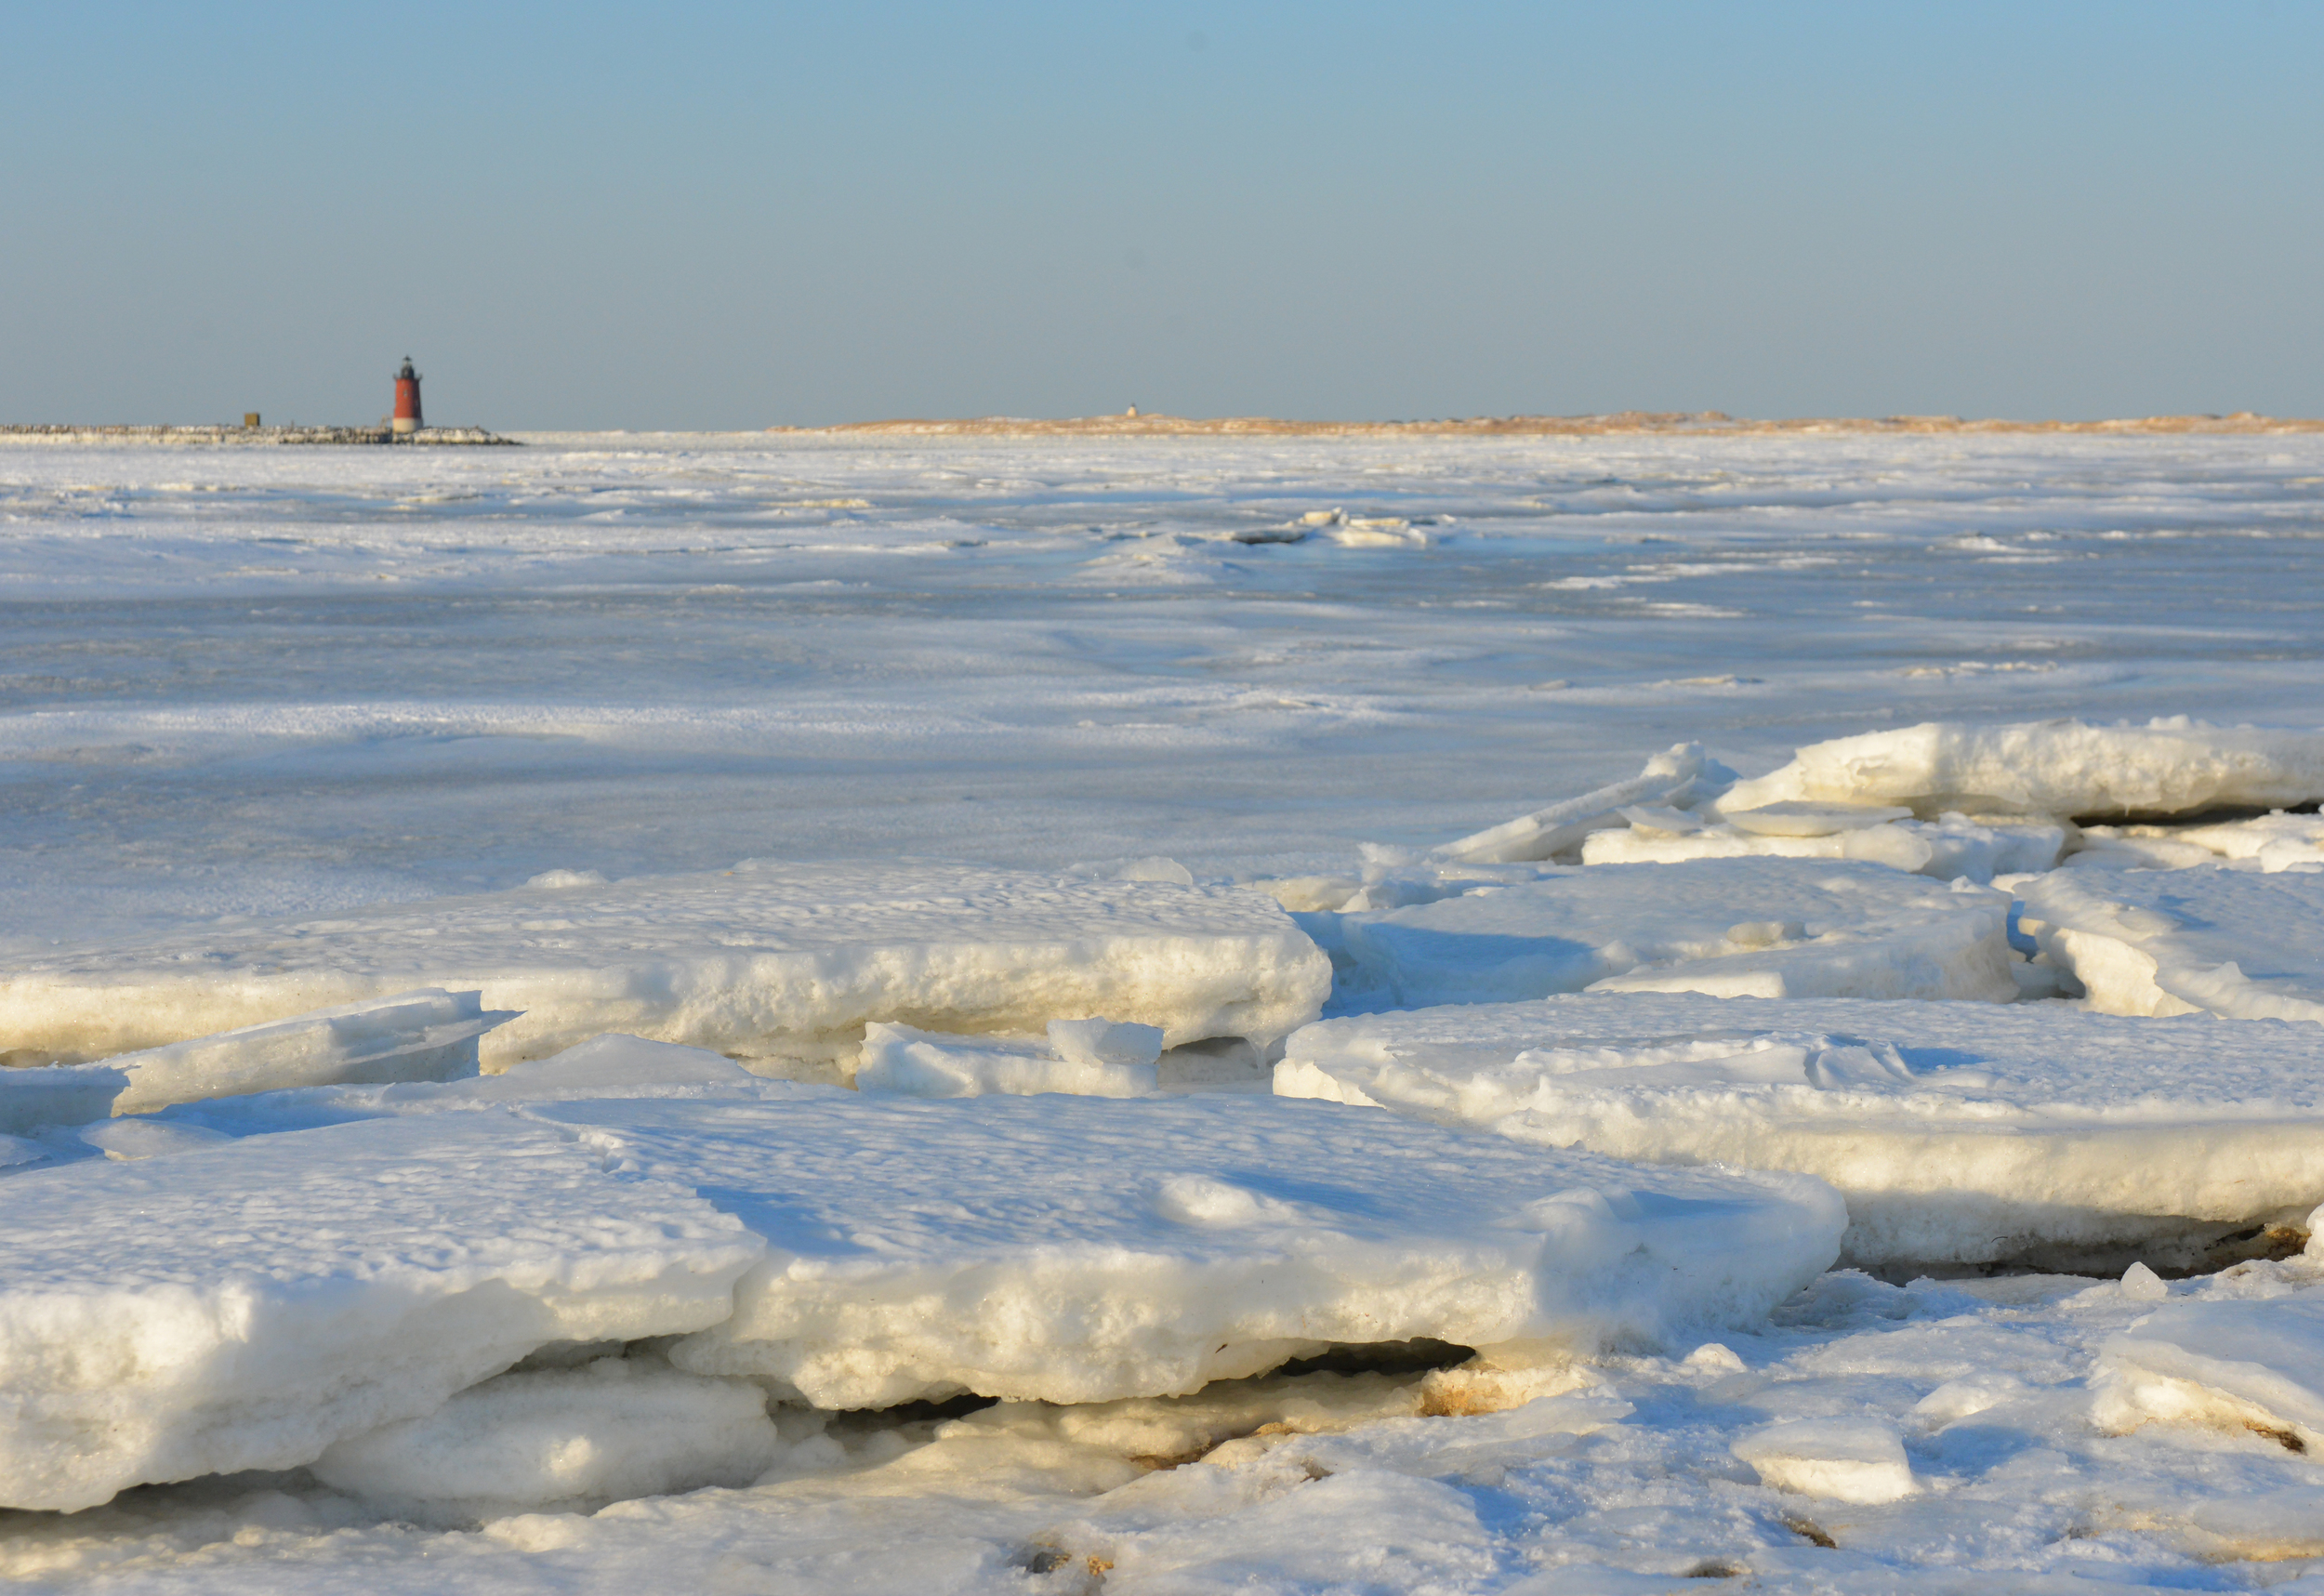 On Delmarva: Ice Floes in the Delaware Bay